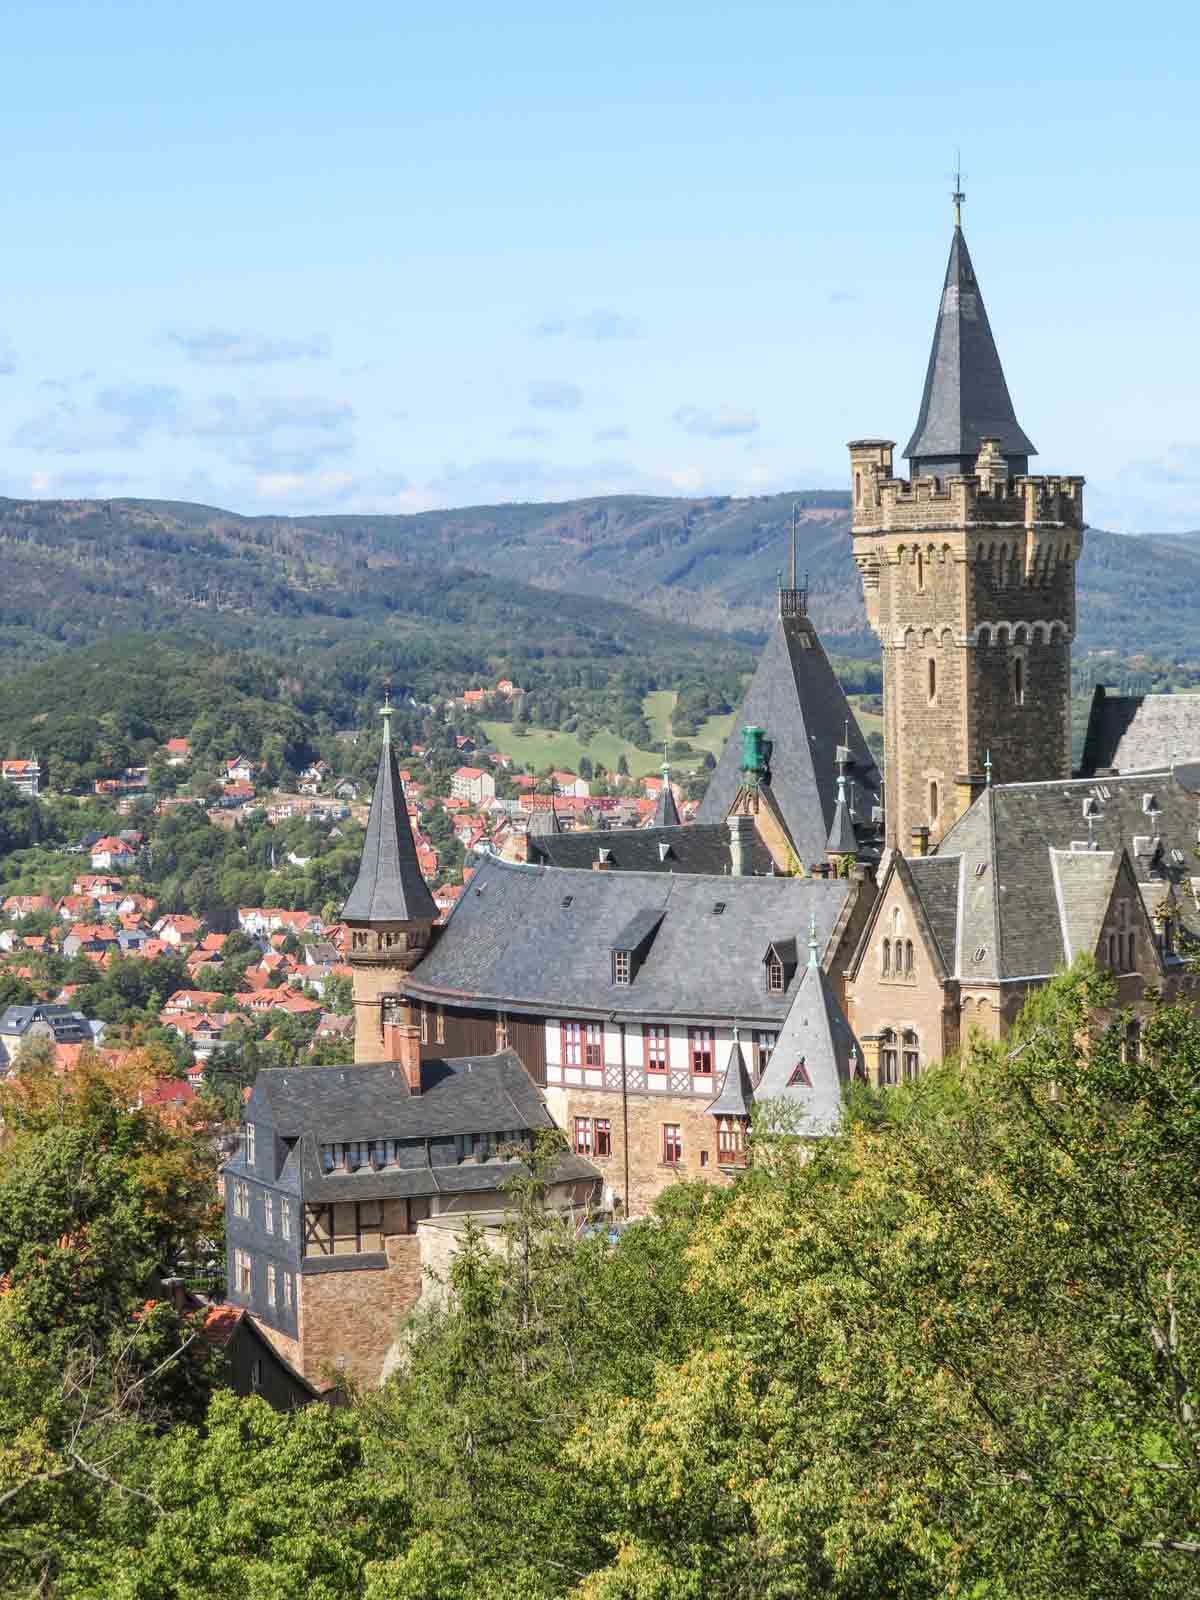 4x de mooiste steden in de Harz, kasteel Wernigerode - Map of Joy